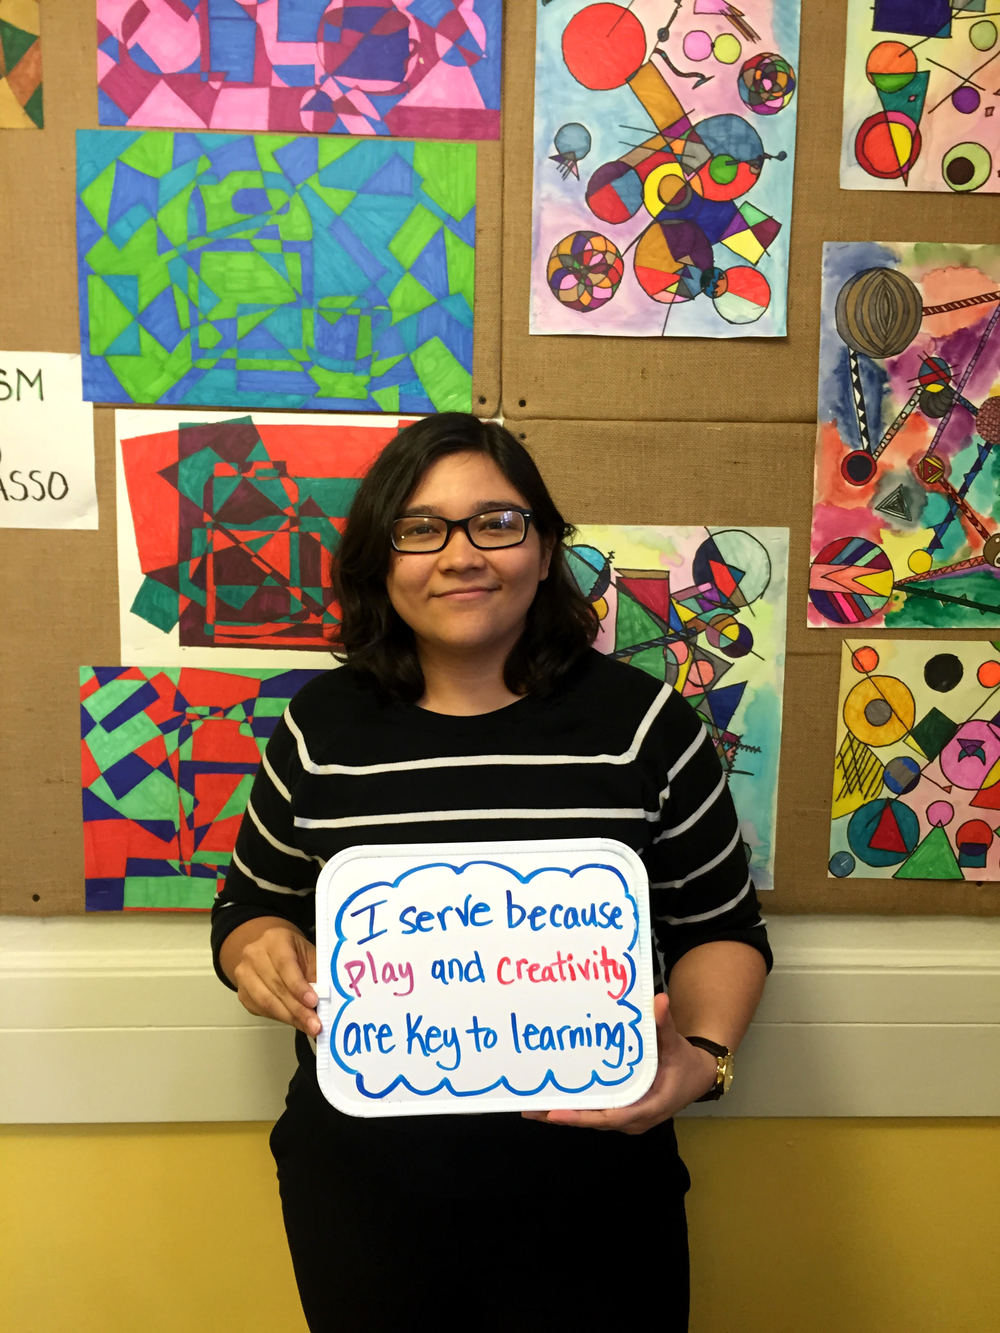 """I serve because play and creativity are key to learning"" - Yuris Martinez, First-Year Esperanza Teaching Fellow at Esperanza Academy & Lawrence Intentional Community"